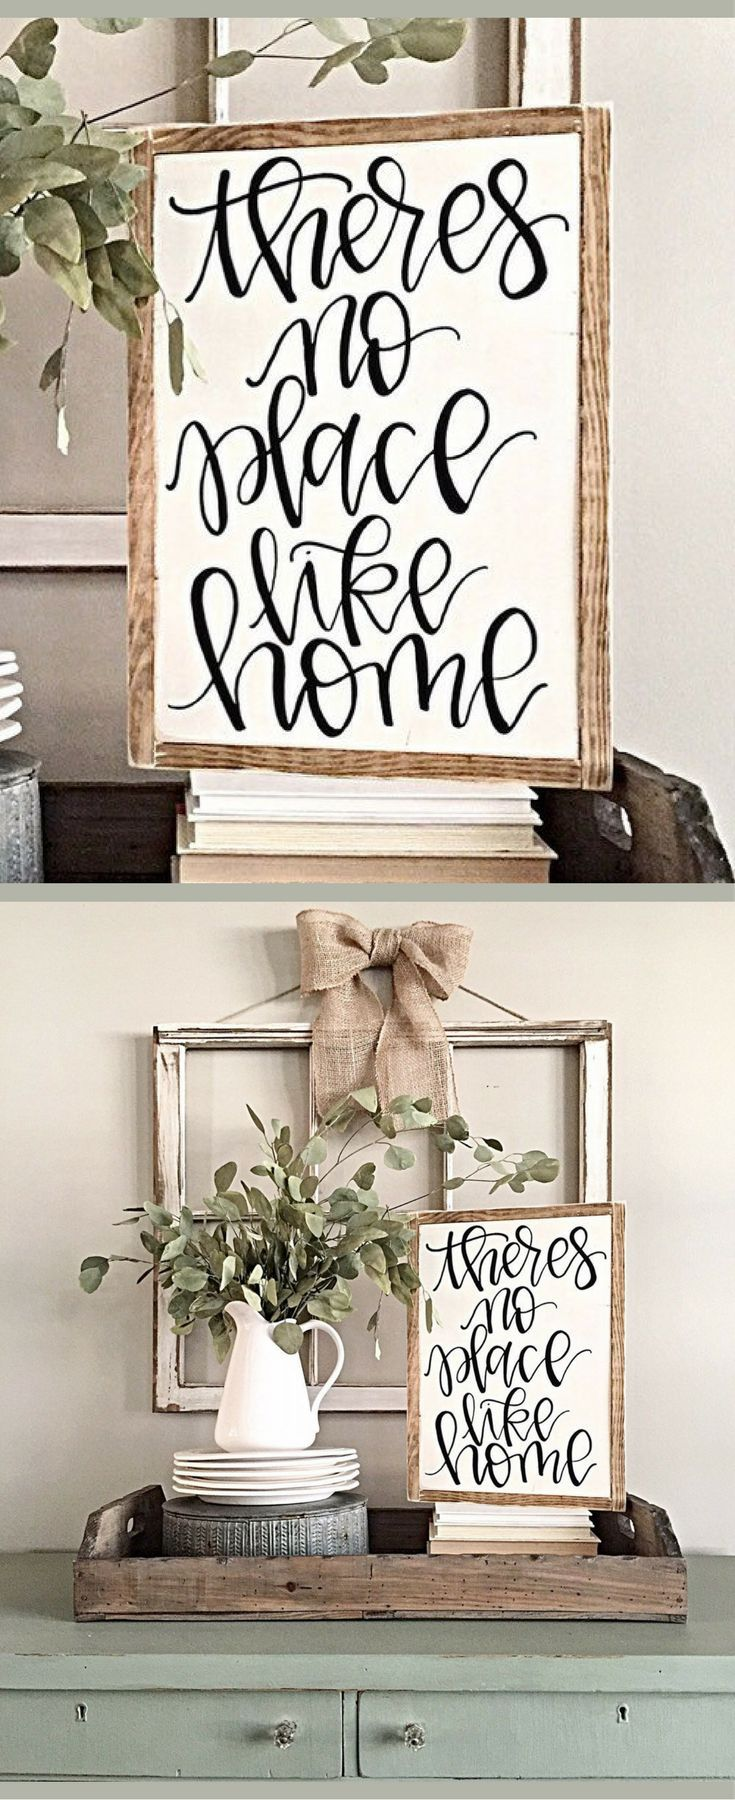 Theres No Place Like Home Hand Painted Sign Rustic Wood Decor Gallery Wall Living Room Farmhouse